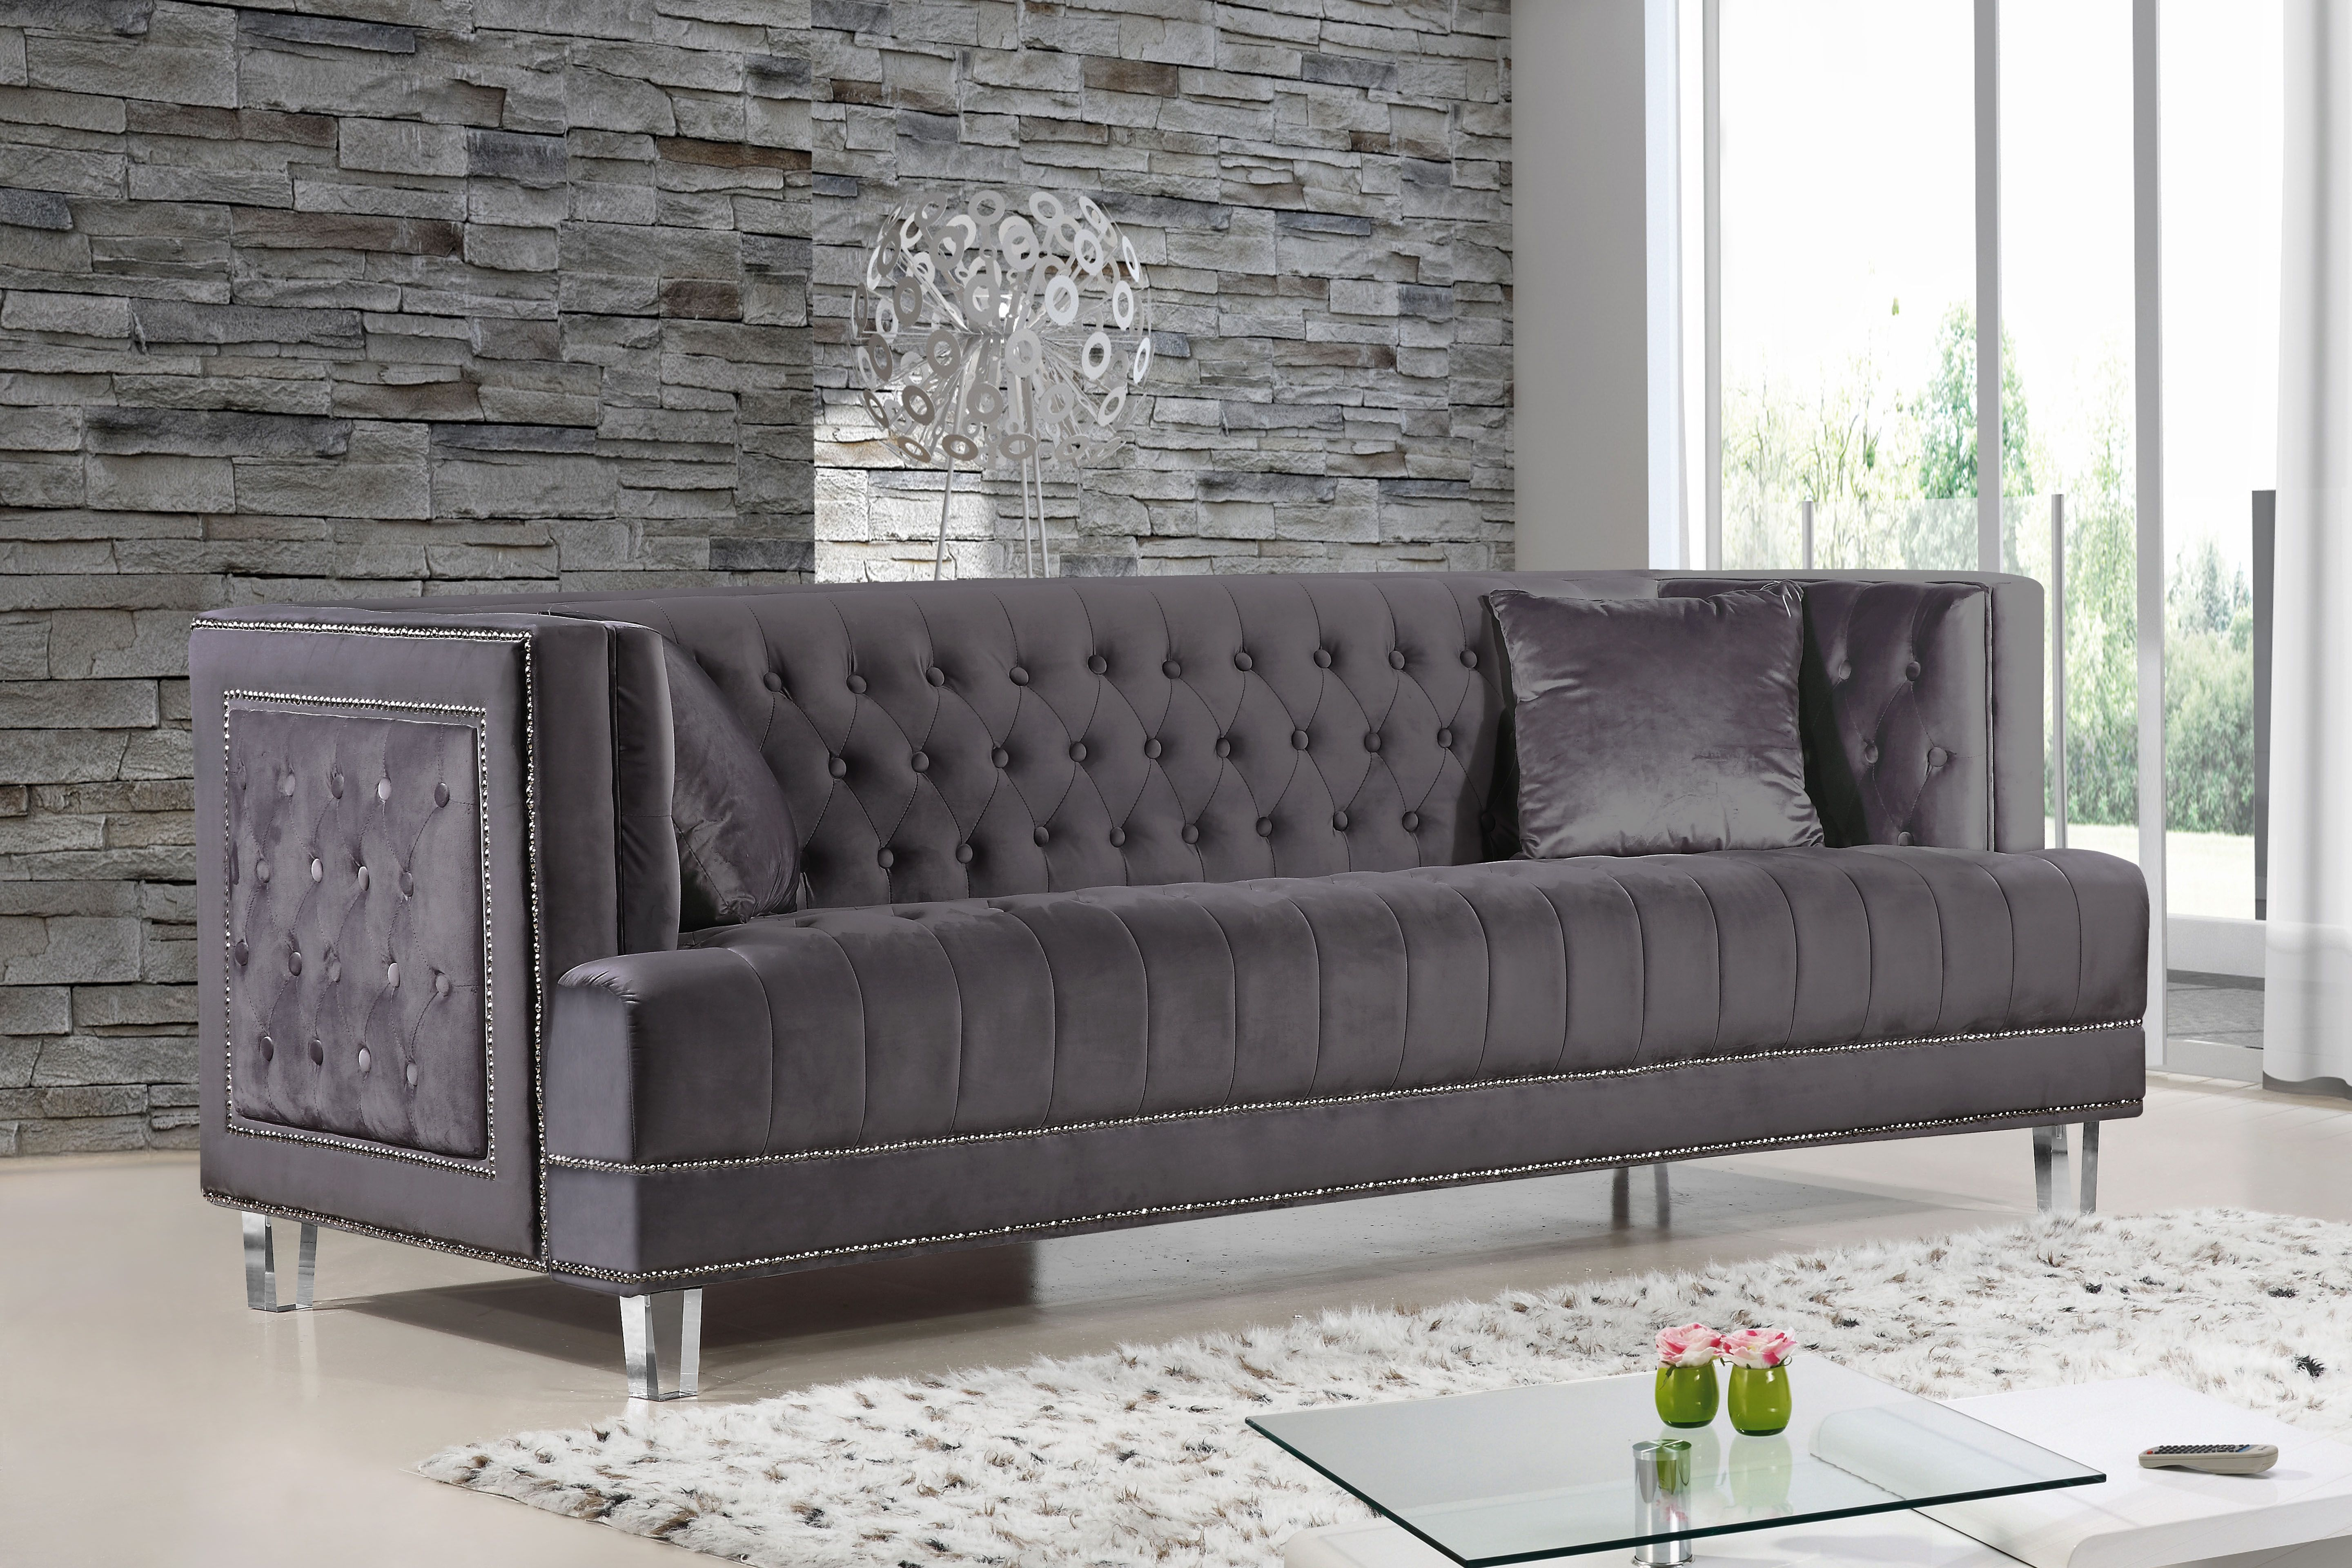 Meridian furniture a sofa with a modern twist the lucas sofa features tufted velvet upholstery with a unique boxy design